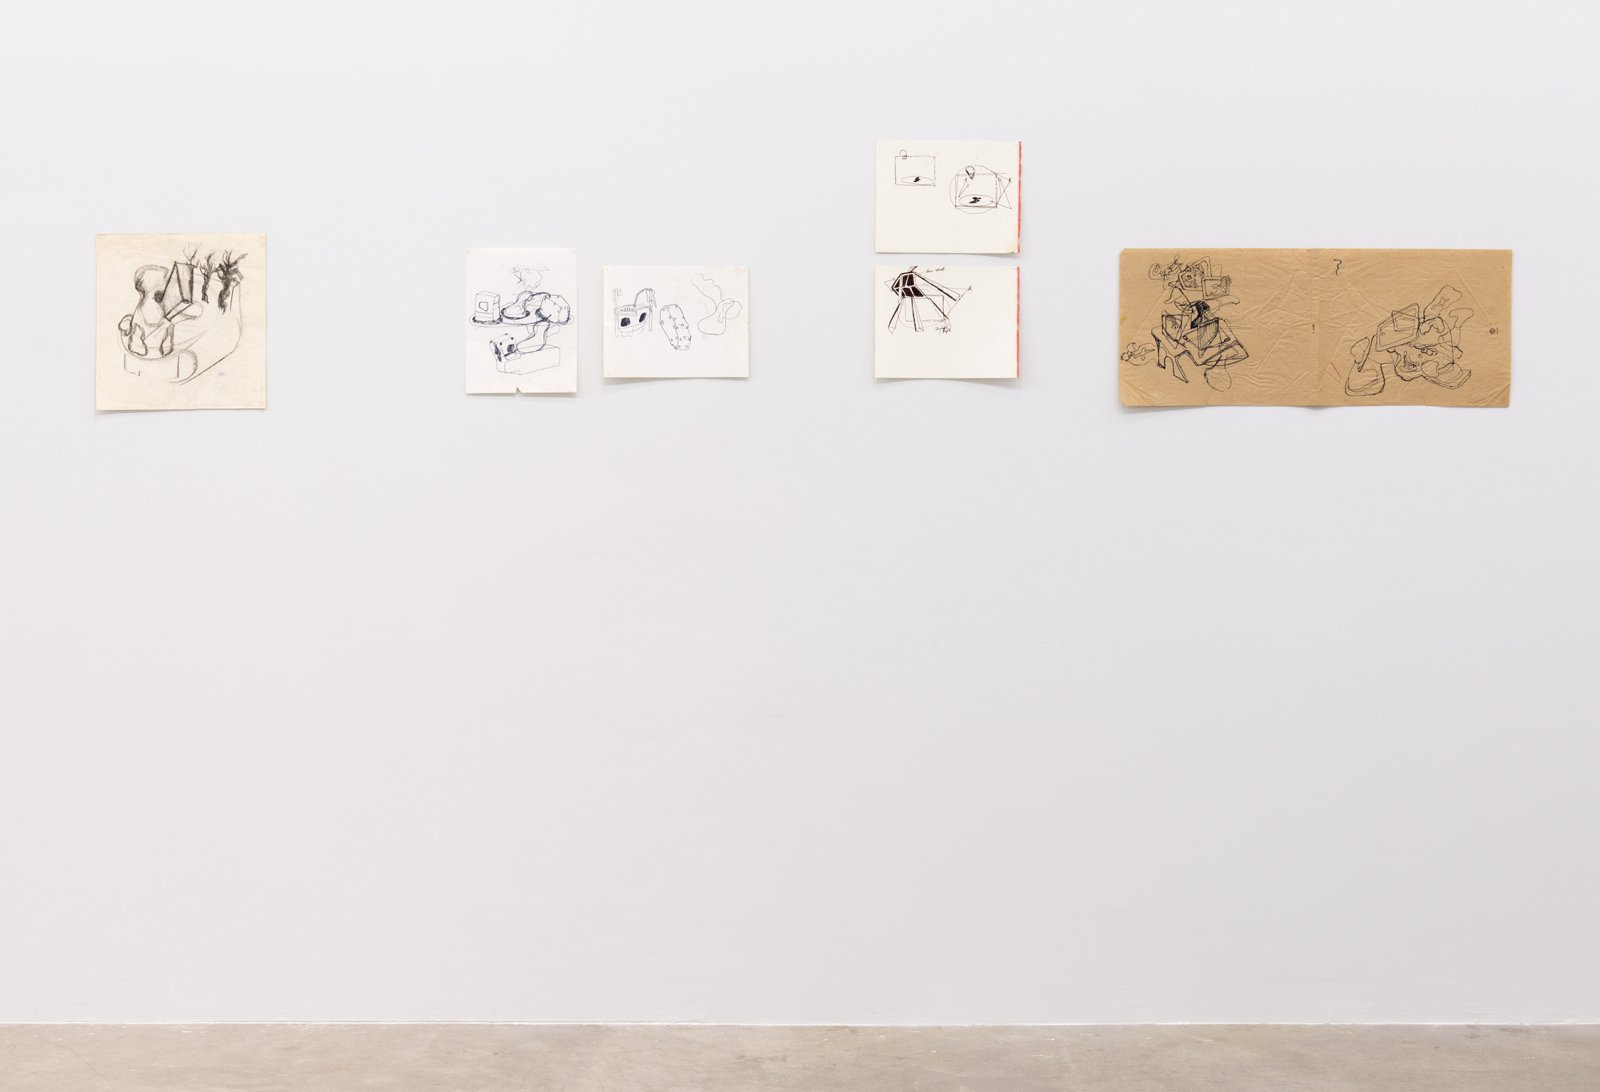 Jerry Pethick, installation view, Where sidewalks leap on the table, Catriona Jeffries, 2014  by Jerry Pethick